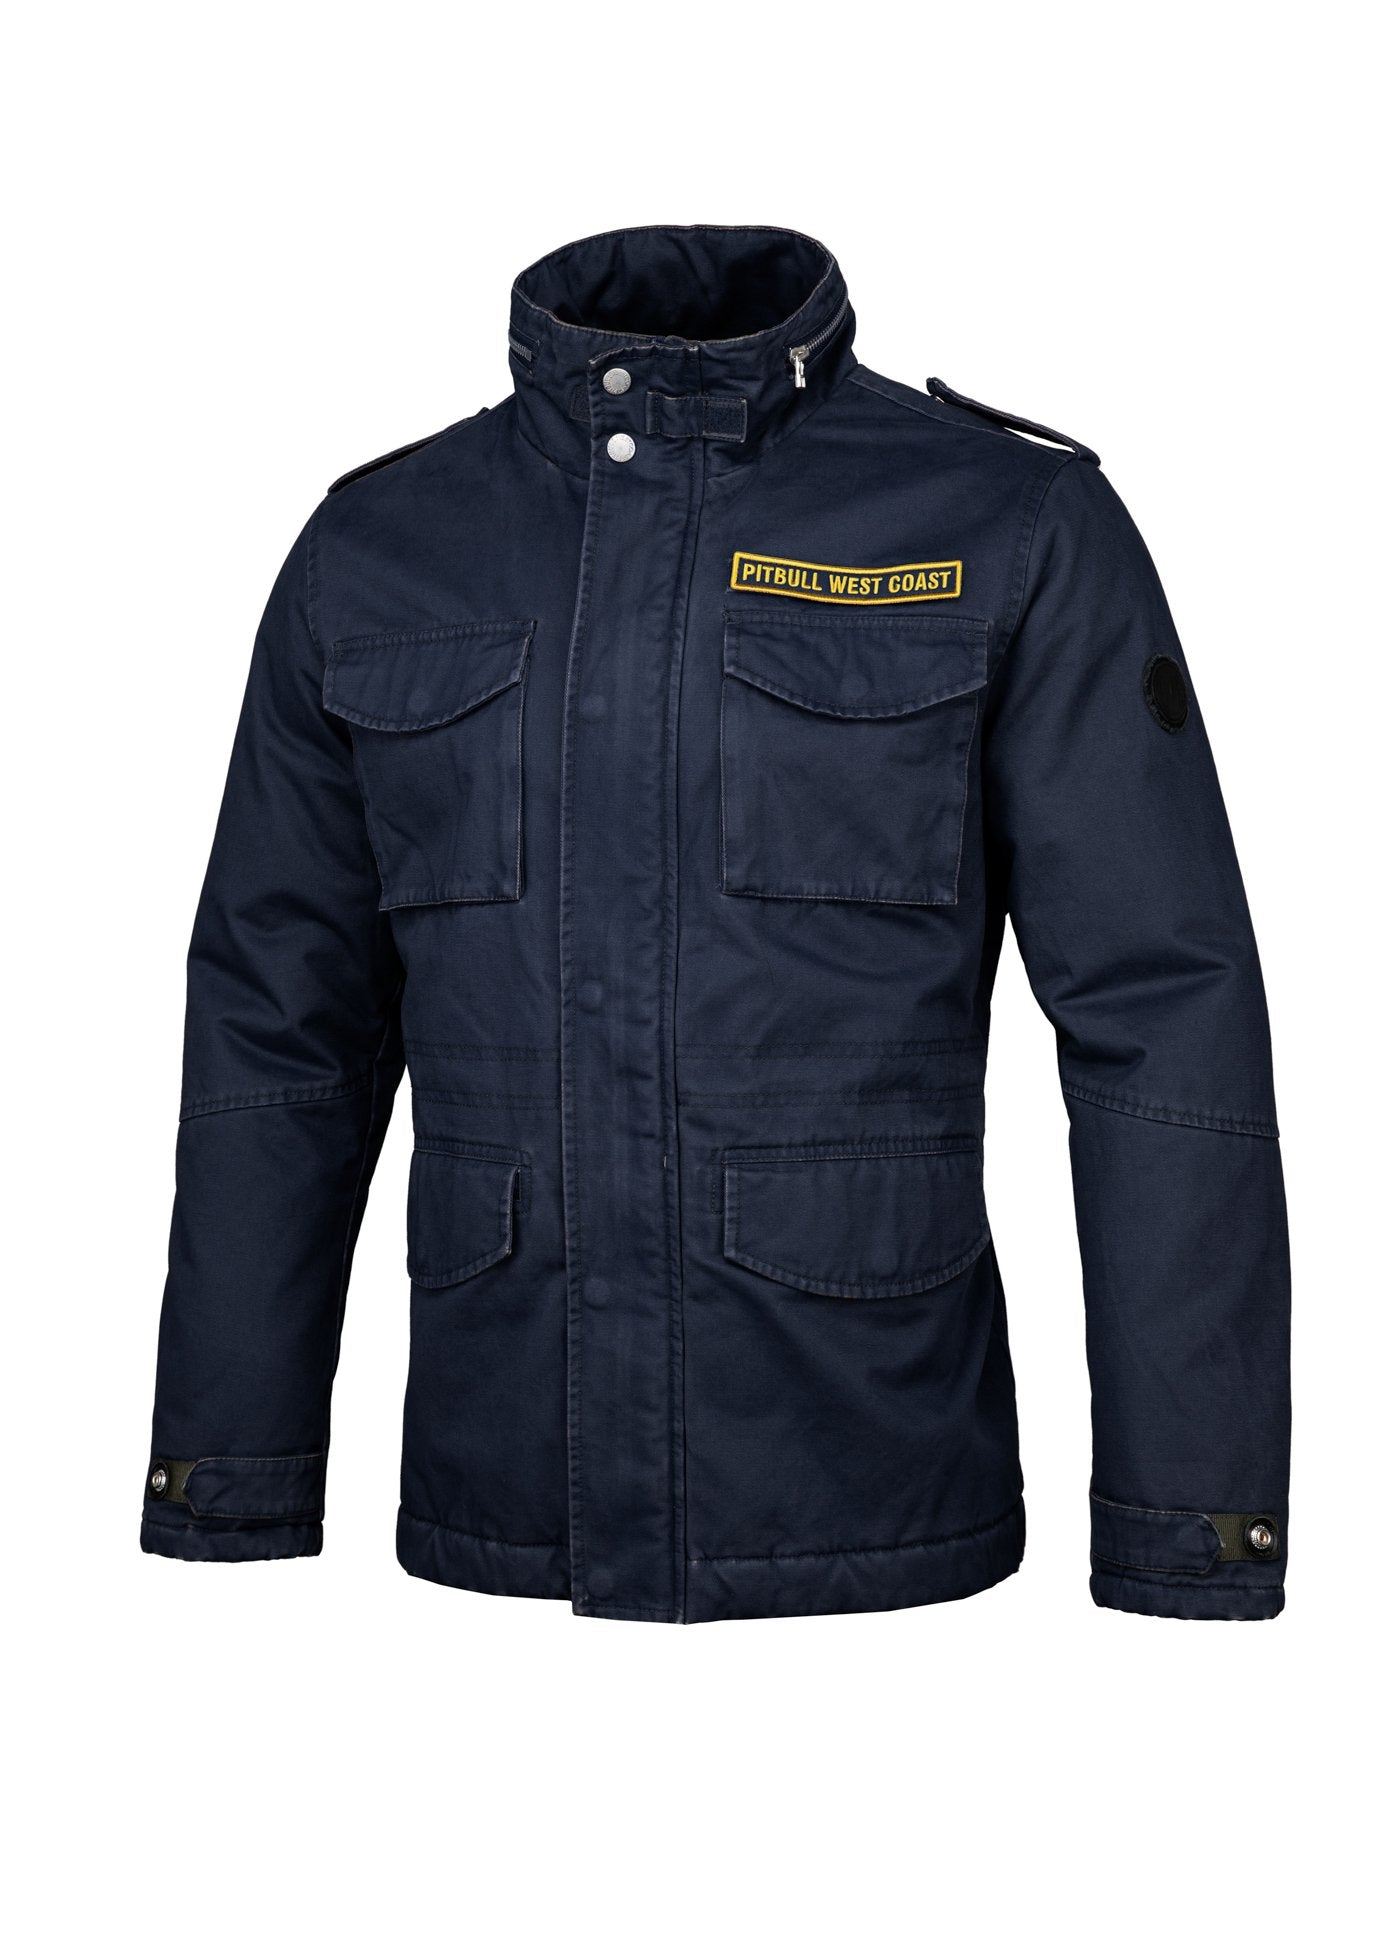 WINTER JACKET MONTEREY DARK NAVY - pitbullwestcoast